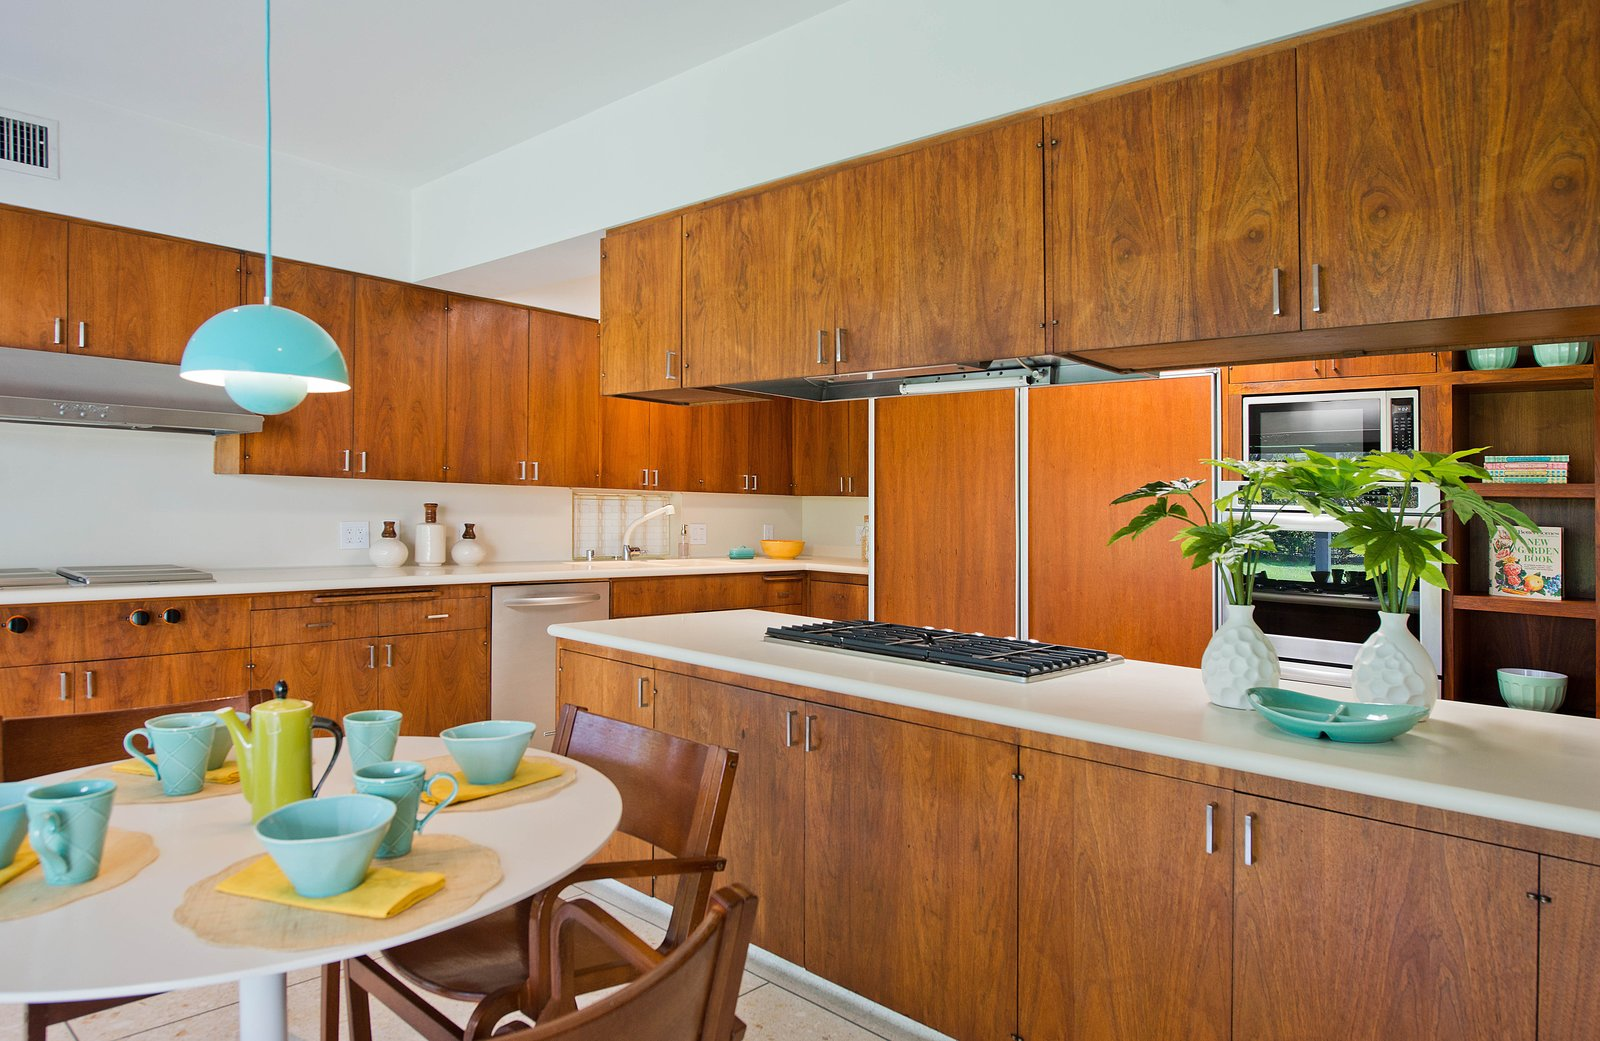 Kitchen, Dishwasher, Wall Oven, Range, Cooktops, Range Hood, Terrazzo, Refrigerator, Pendant, Microwave, and Wood The charming kitchen retains its original walnut cabinets.    Best Kitchen Microwave Range Hood Wood Pendant Photos from An Alluring Kazumi Adachi Home Is Listed For $1.79M